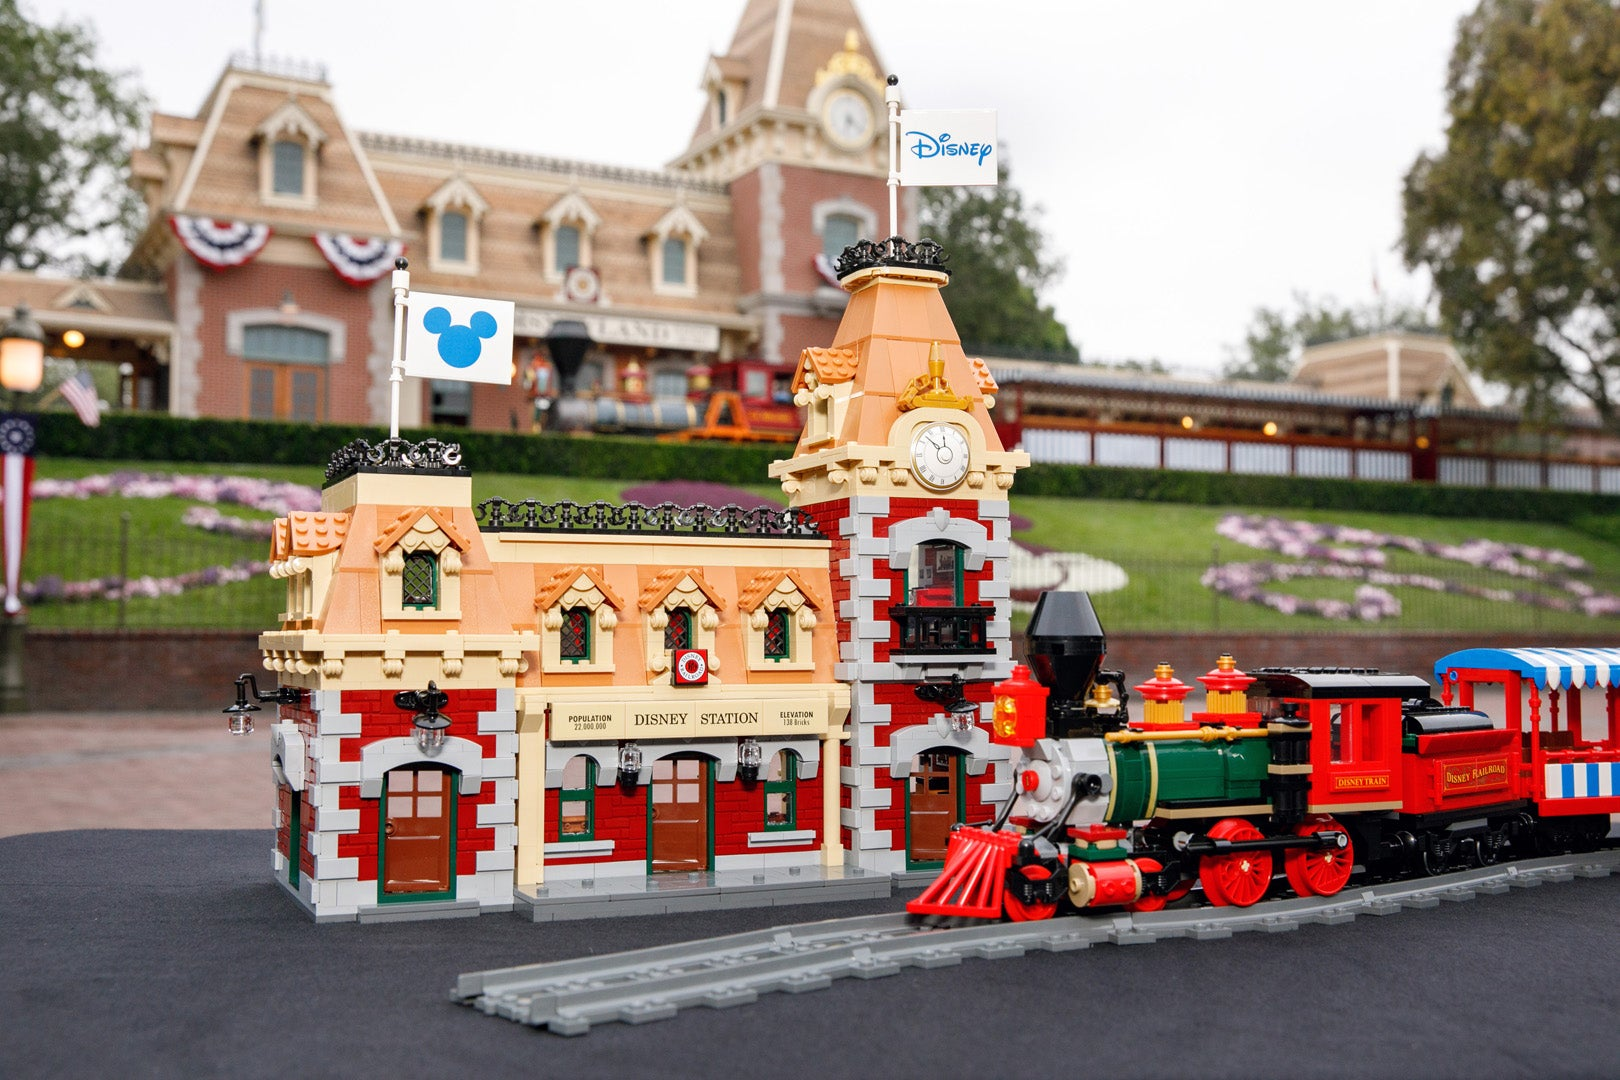 Lego's Motorised Disney Train Set Looks Like It Just Pulled Out Of The Park